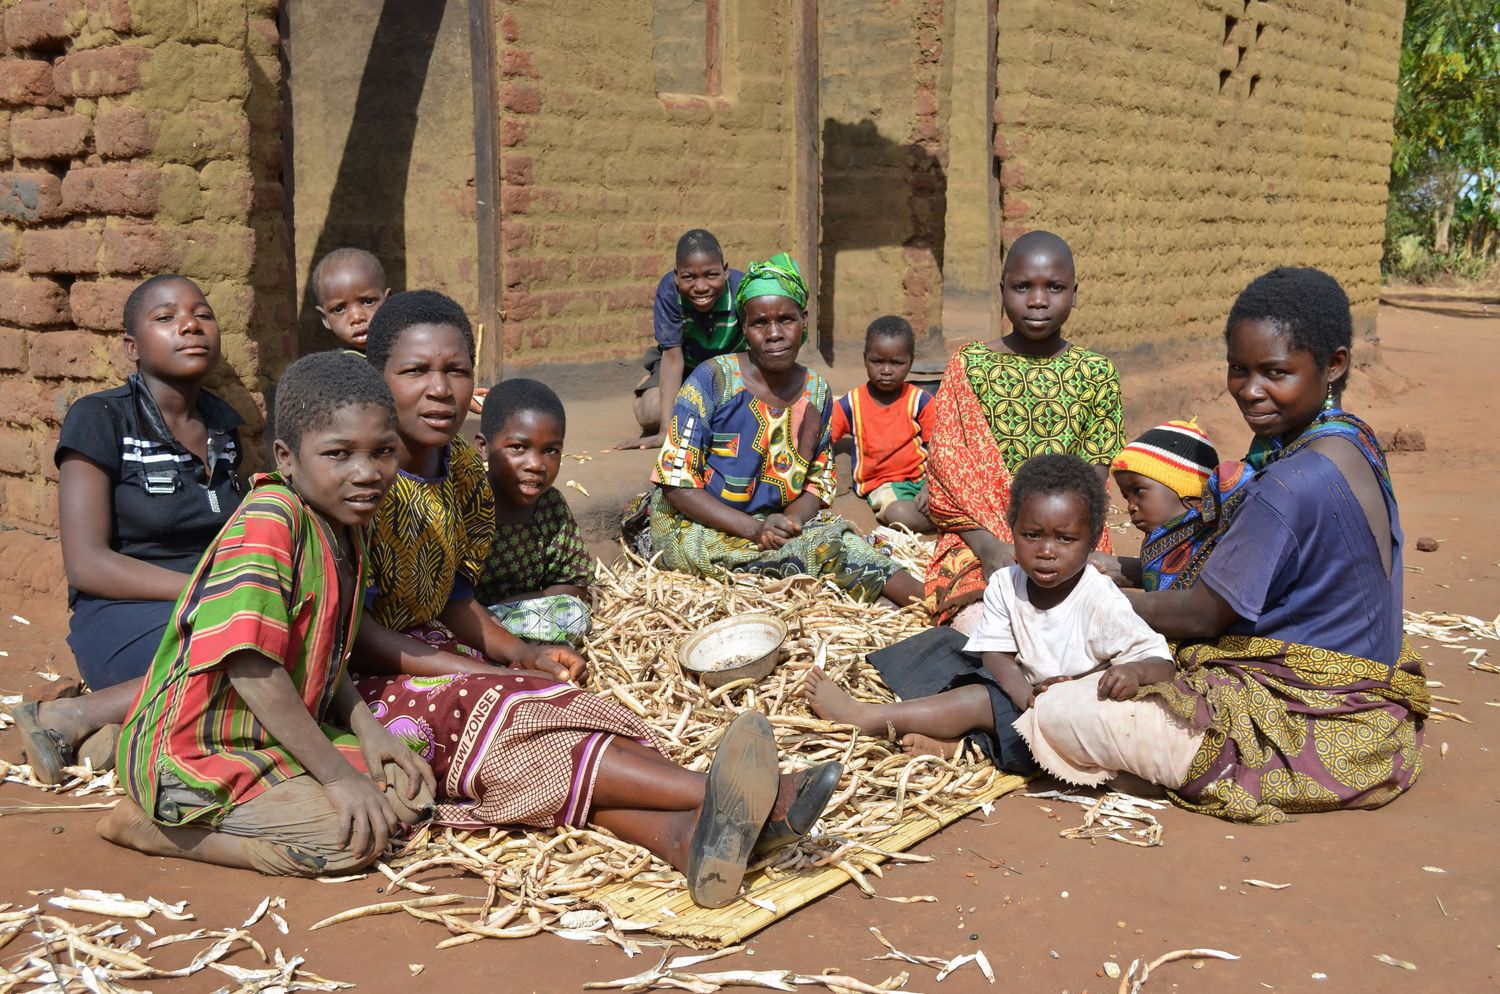 New breeding technologies can help make agriculture in developing countries more productive and protect against climate change. This photo shows smallholder farmers in Malawi peeling peas in front of their homestead.